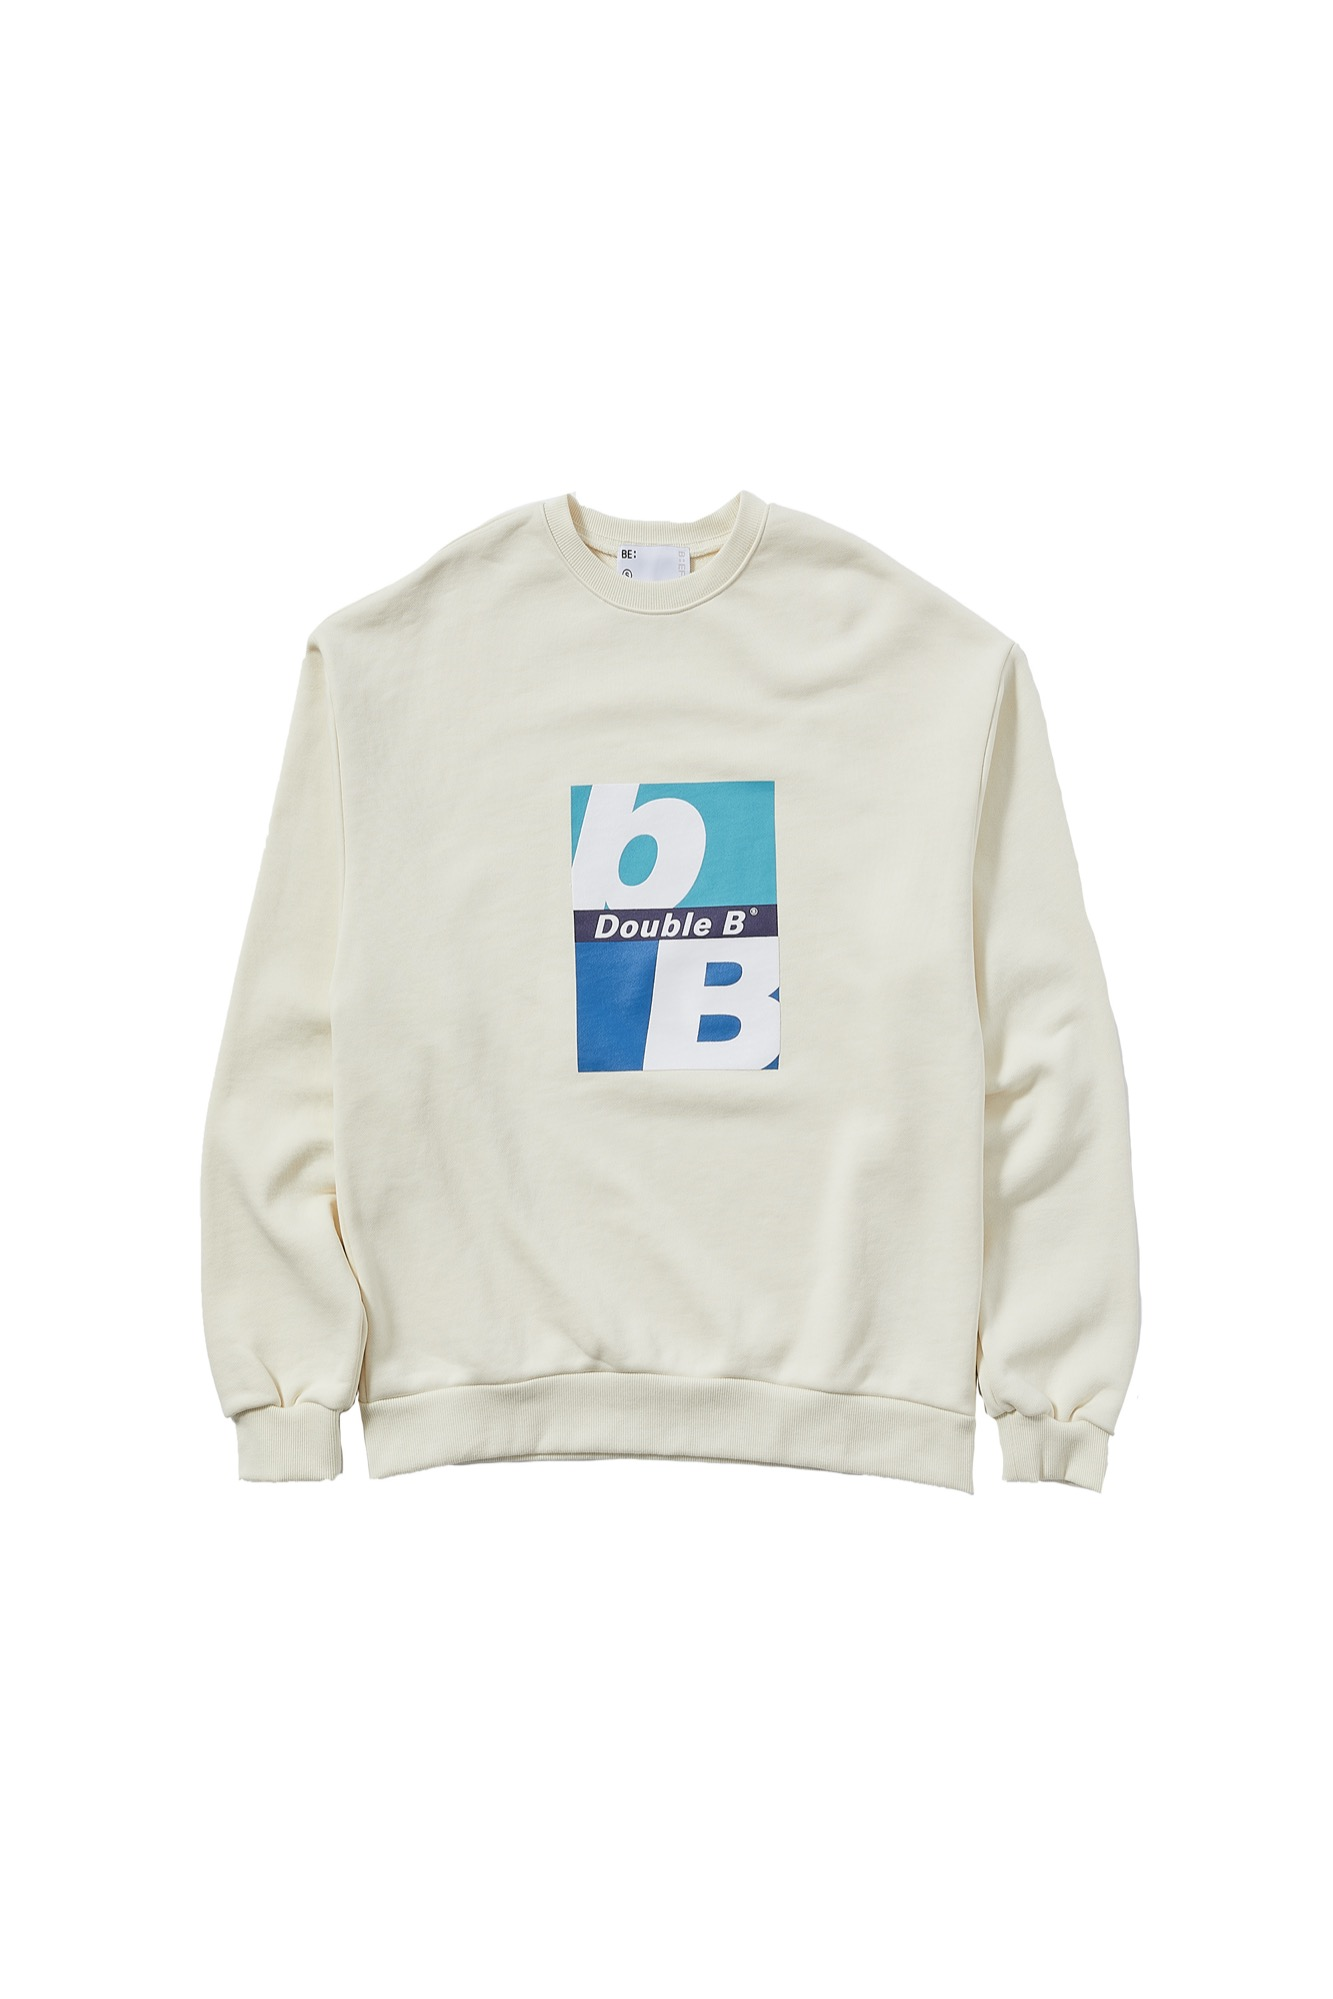 DOUBLE B SWEATSHIRT IVORY